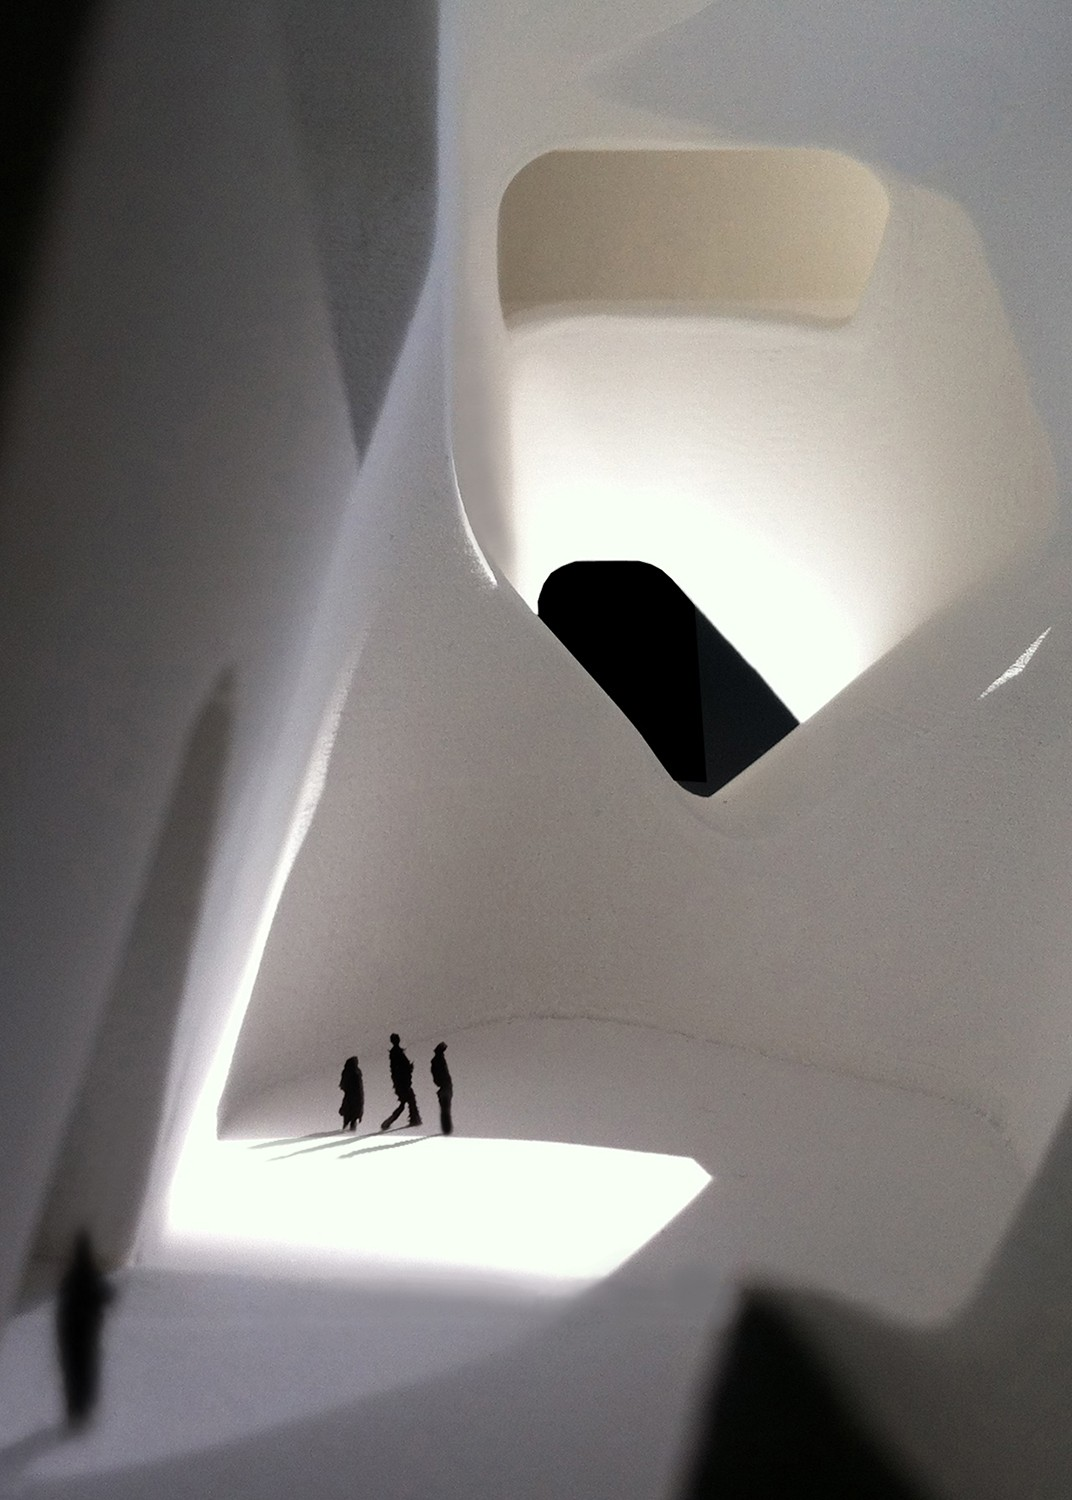 https://stevenholl.sfo2.digitaloceanspaces.com/uploads/projects/project-images/StevenHollArchitects_Tianjin_Interior1_WV.jpg